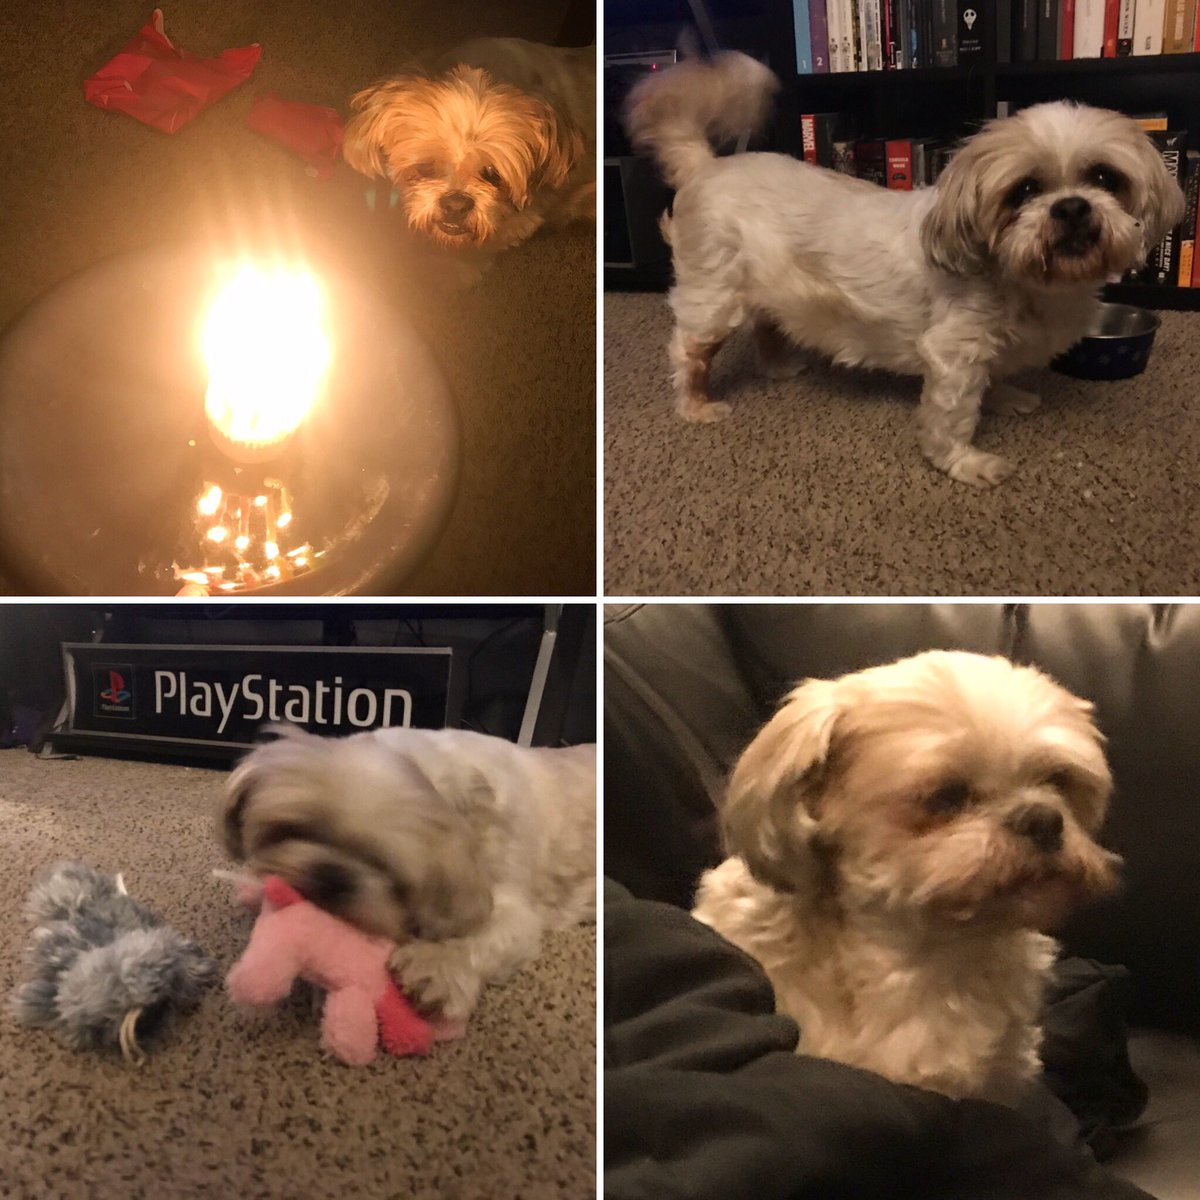 616Entertainment - HAPPY BIRTHDAY PATCH! Our little old man Patches Lugosi turned 11 today! He got two new toys, his own little cake, and some roast beef mixed in with his dinner. He's spoiled to the moon and back! We love you, Patcharone. ❤️